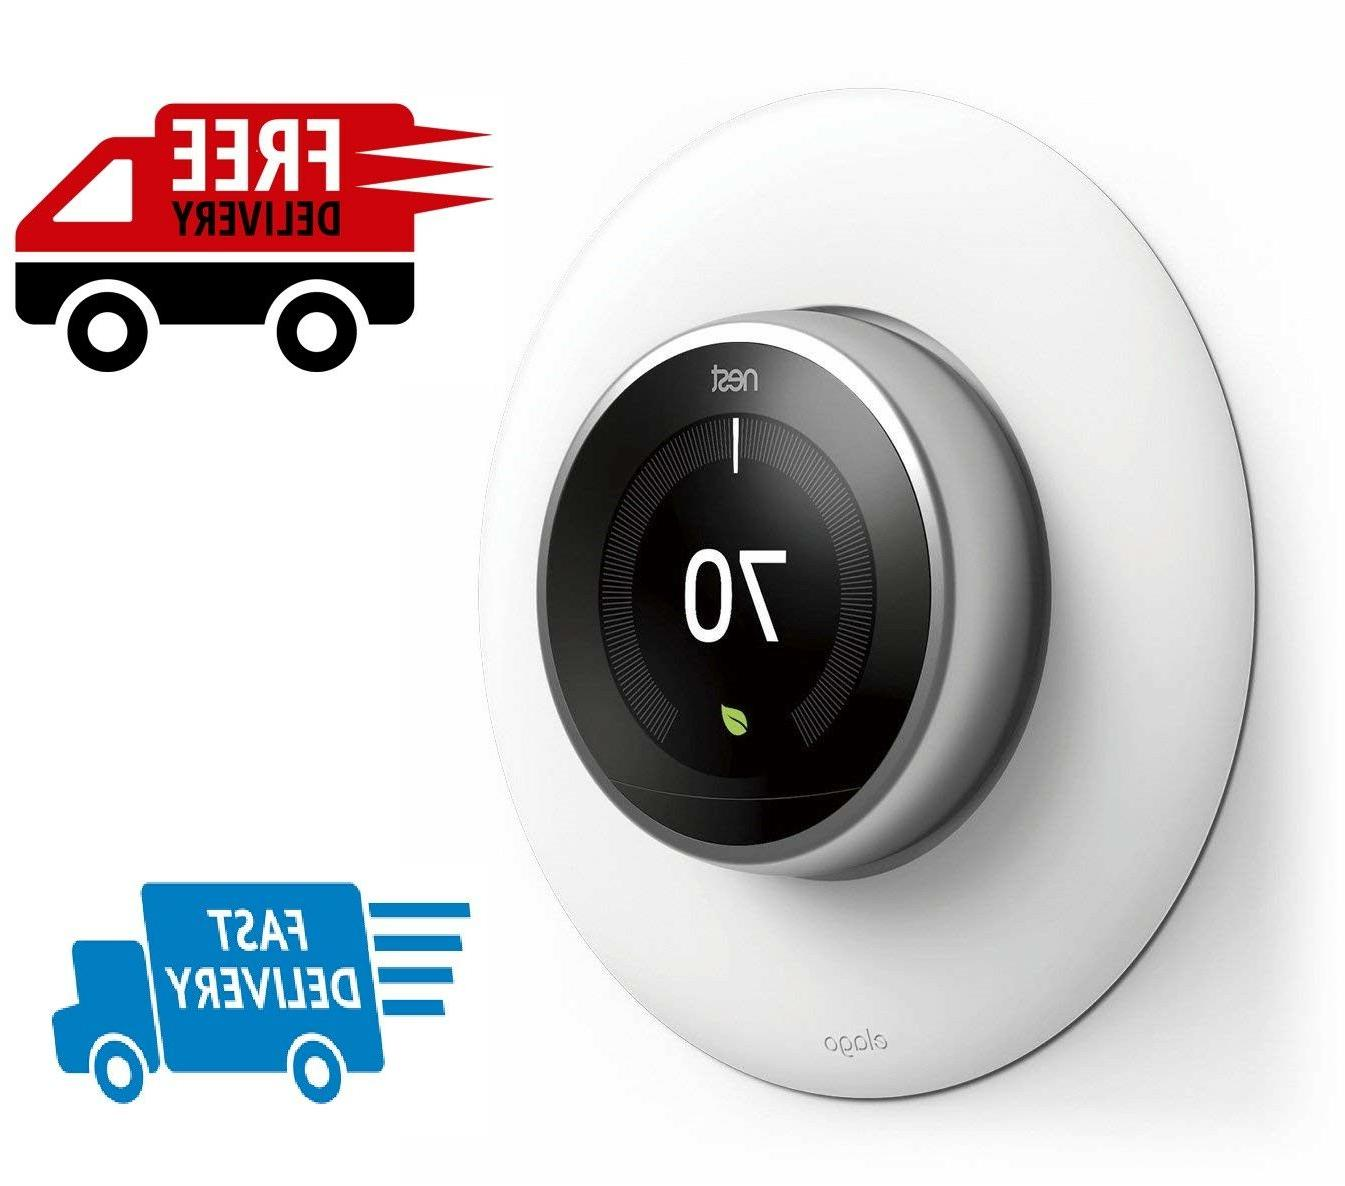 New Home Tools Wall Plate Cover for Nest Learning Thermostat